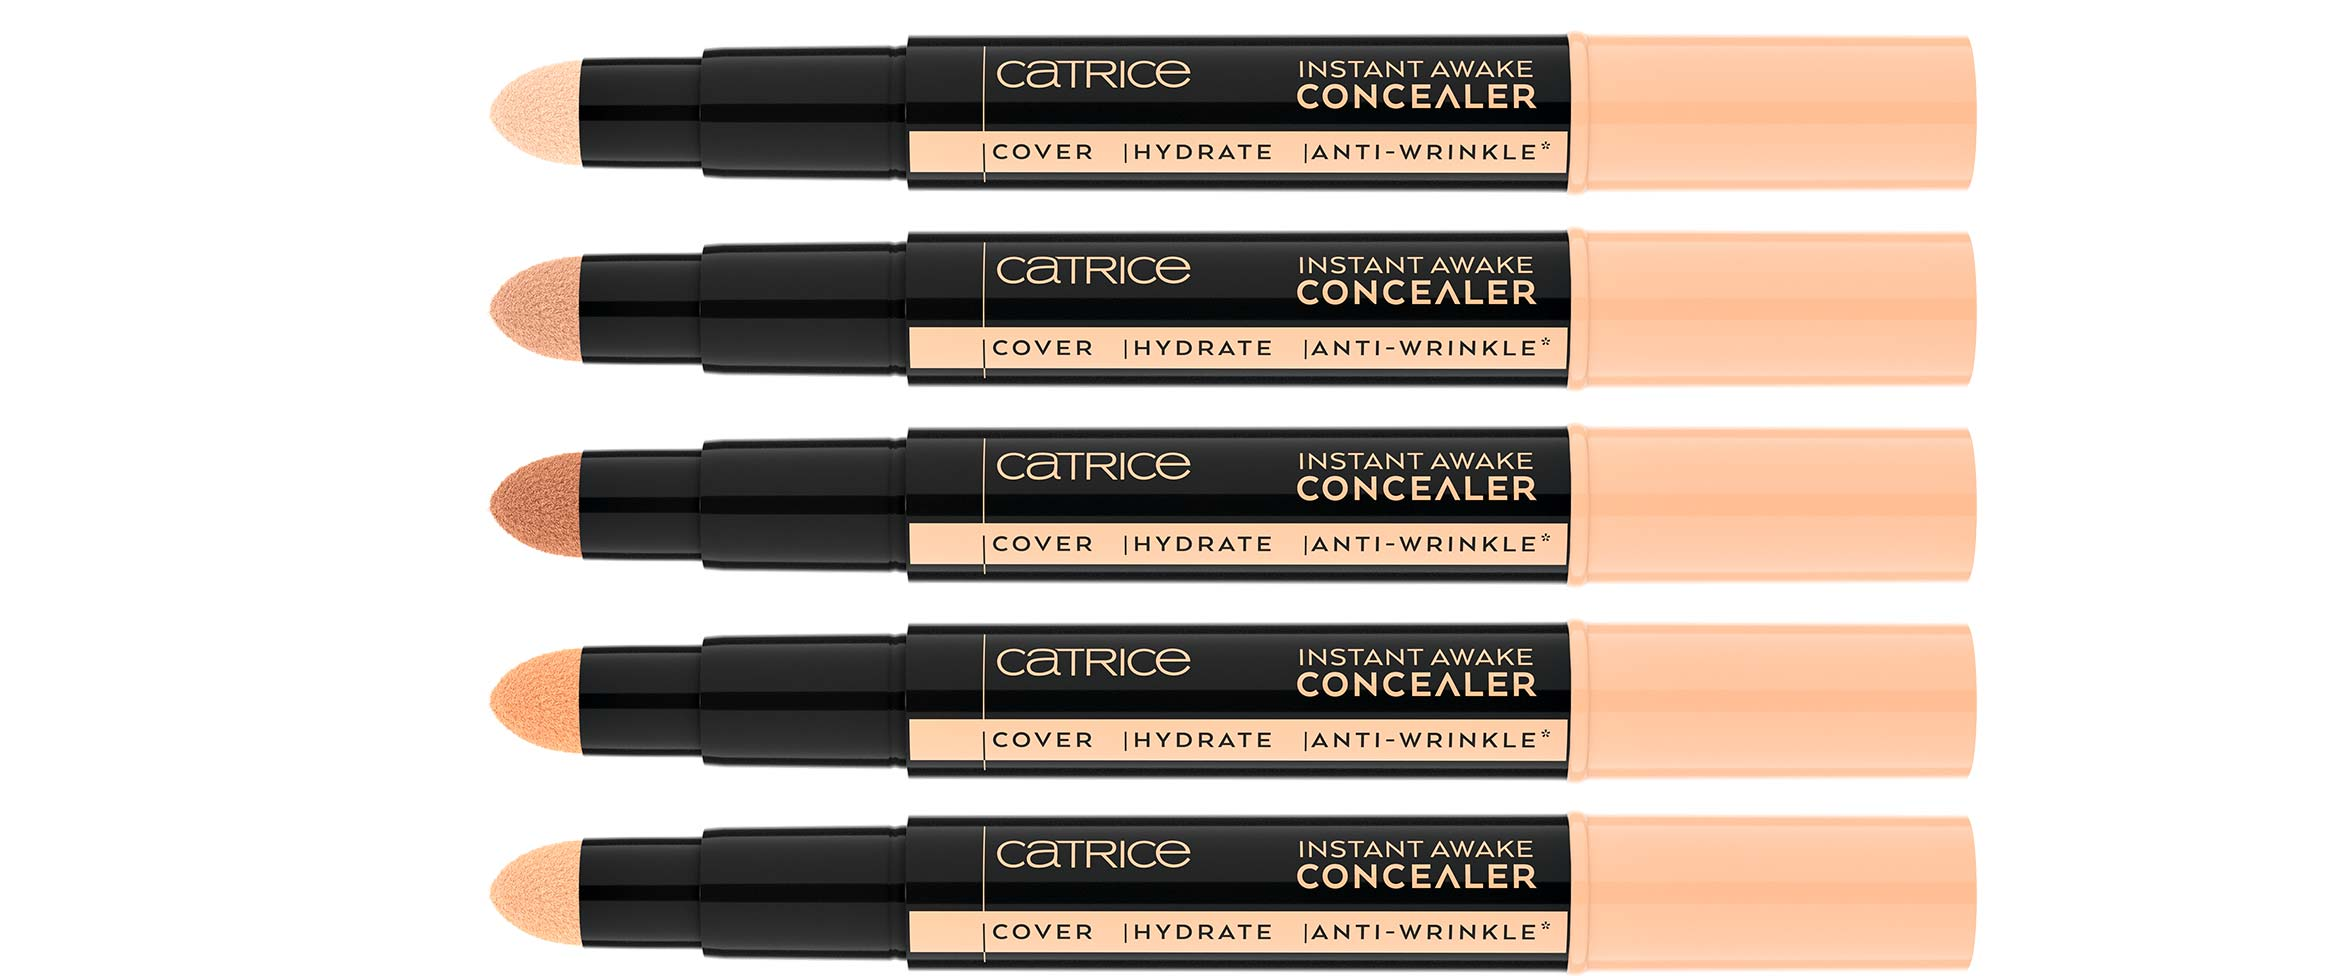 catrice-instant-awake-concealer